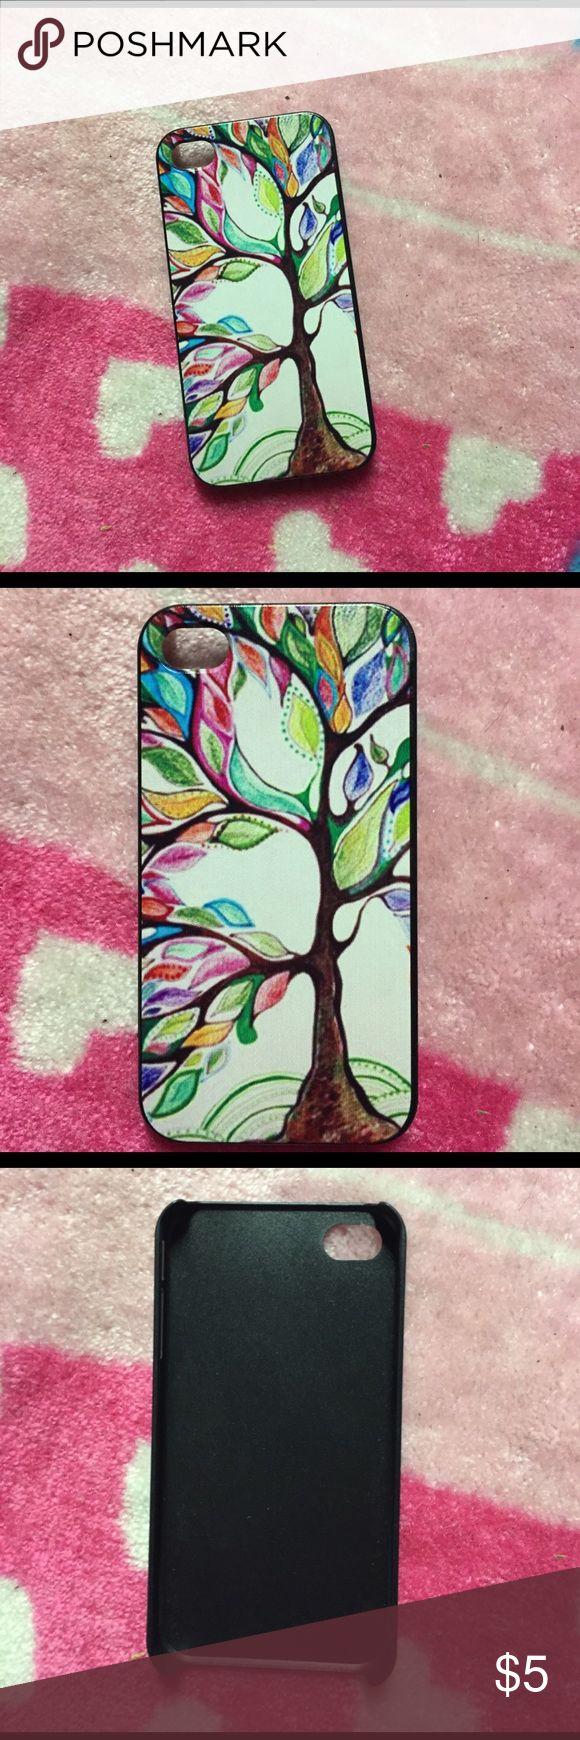 iPhone 4 case Never used iPhone 4 case Accessories Phone Cases